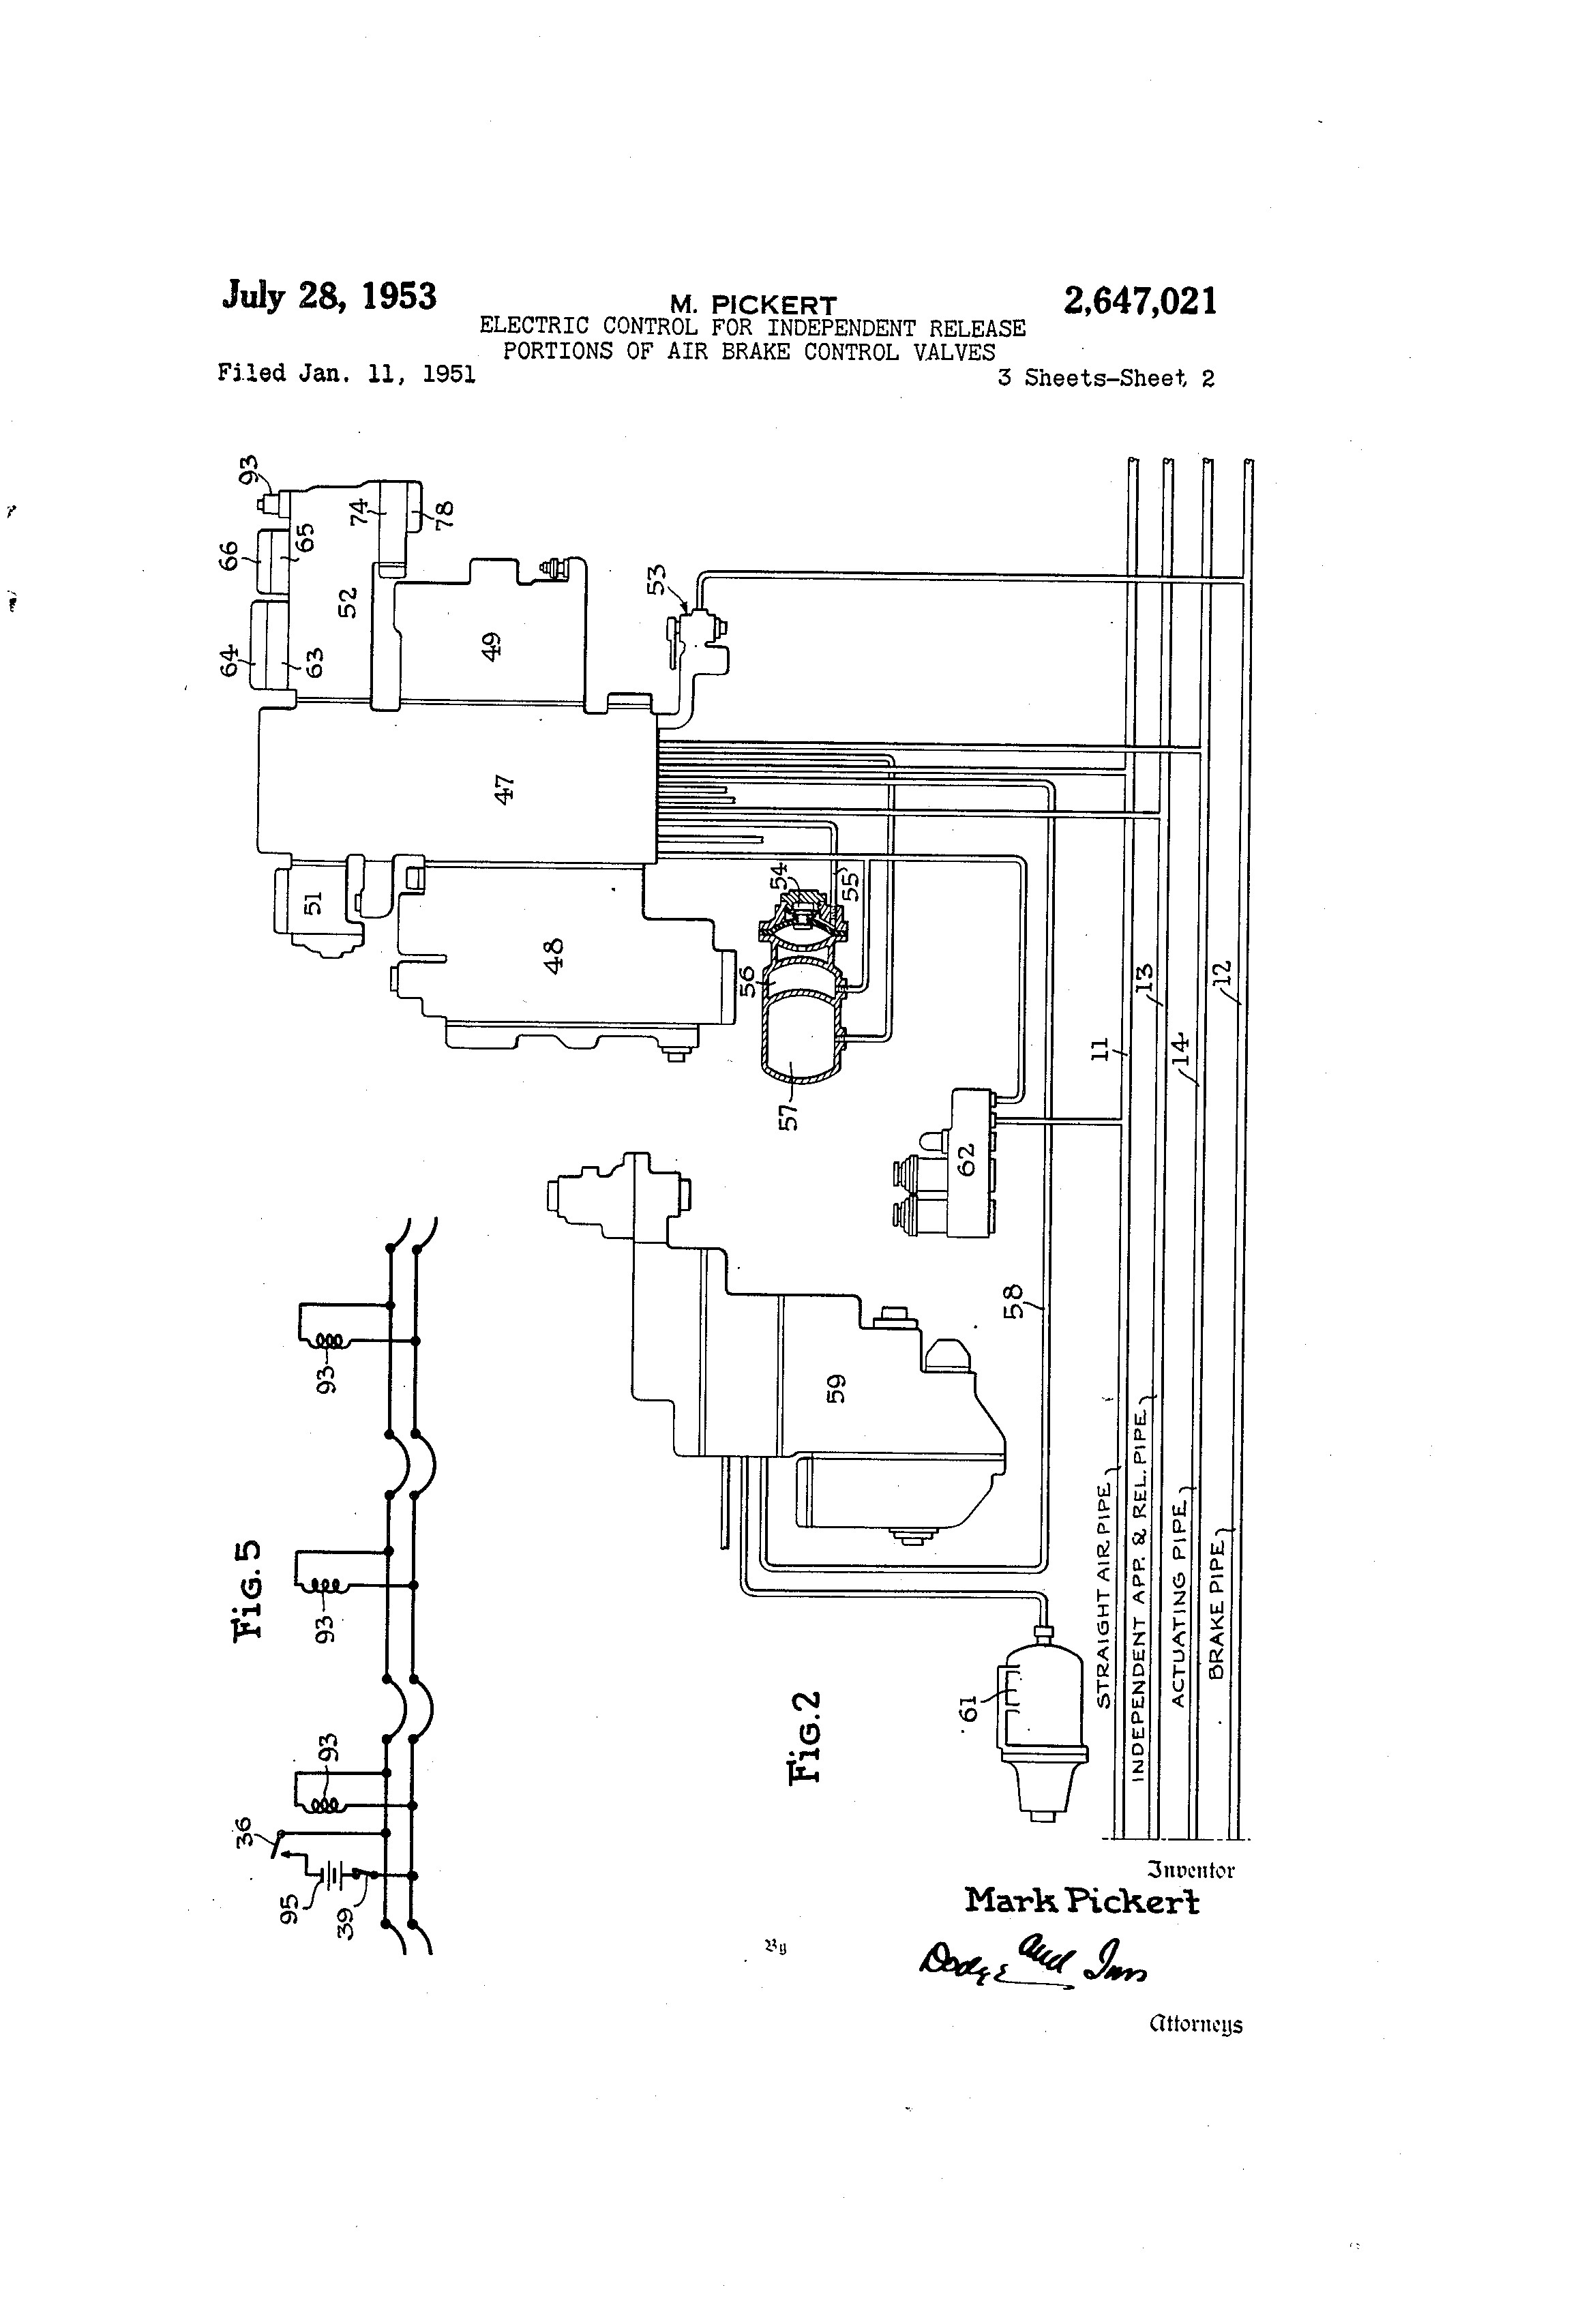 Air Brake Valve Diagram | My Wiring DIagram